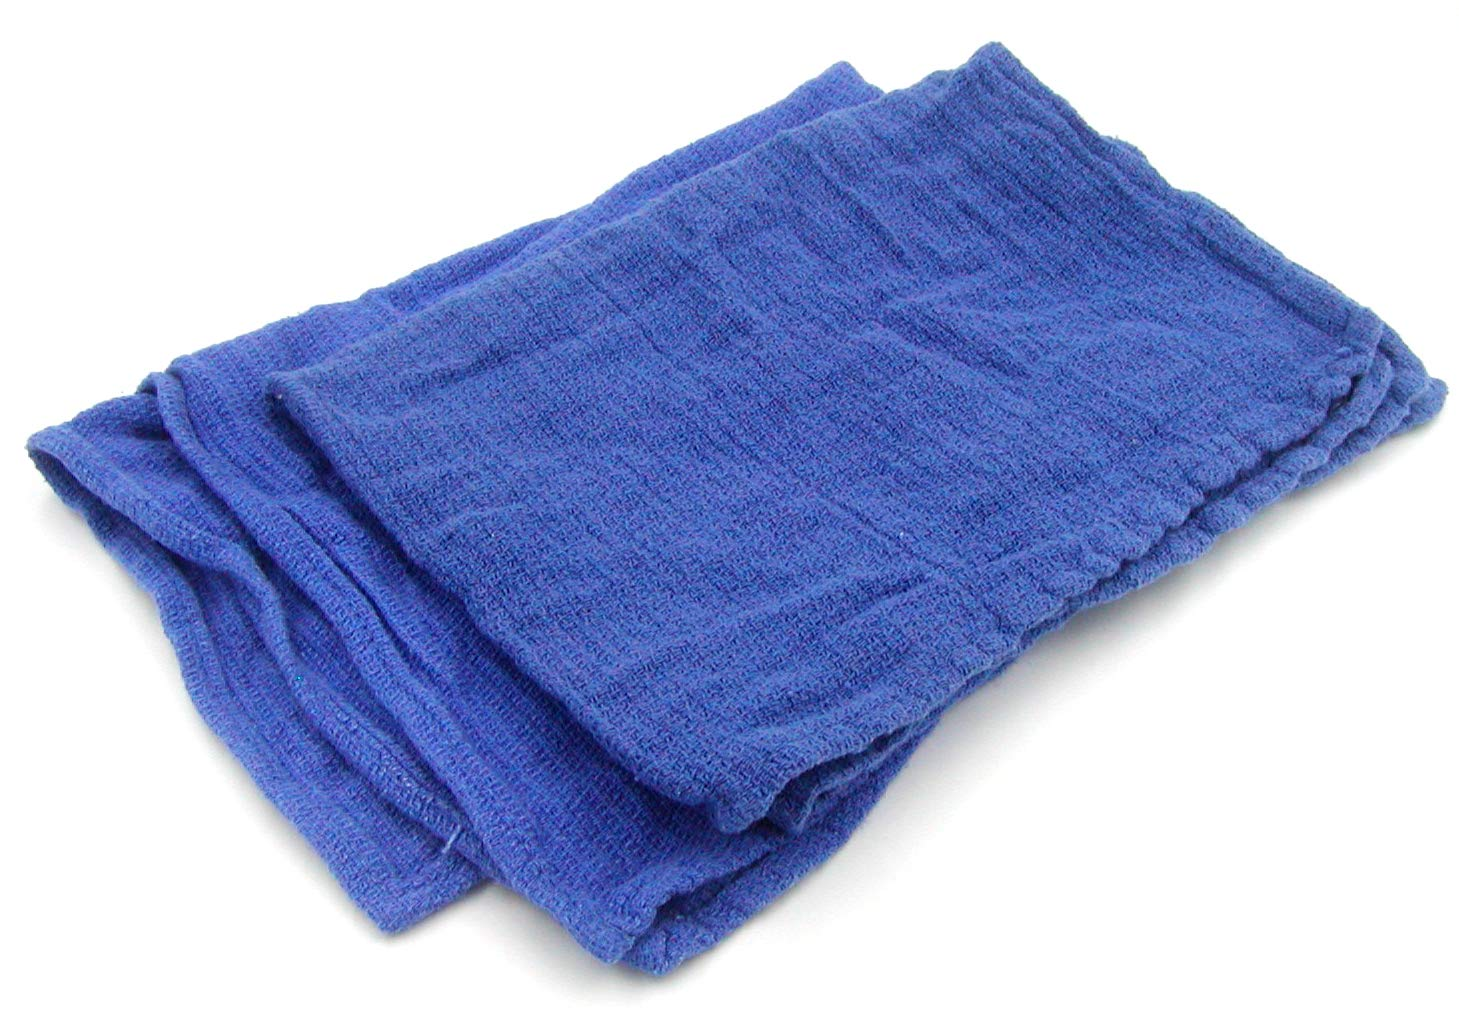 Recycled Blue Surgical Towel Rags - 10 Pound Box - A Perfect Non-Streaking No Lint Towel by A&A Wiping Cloth (Image #2)